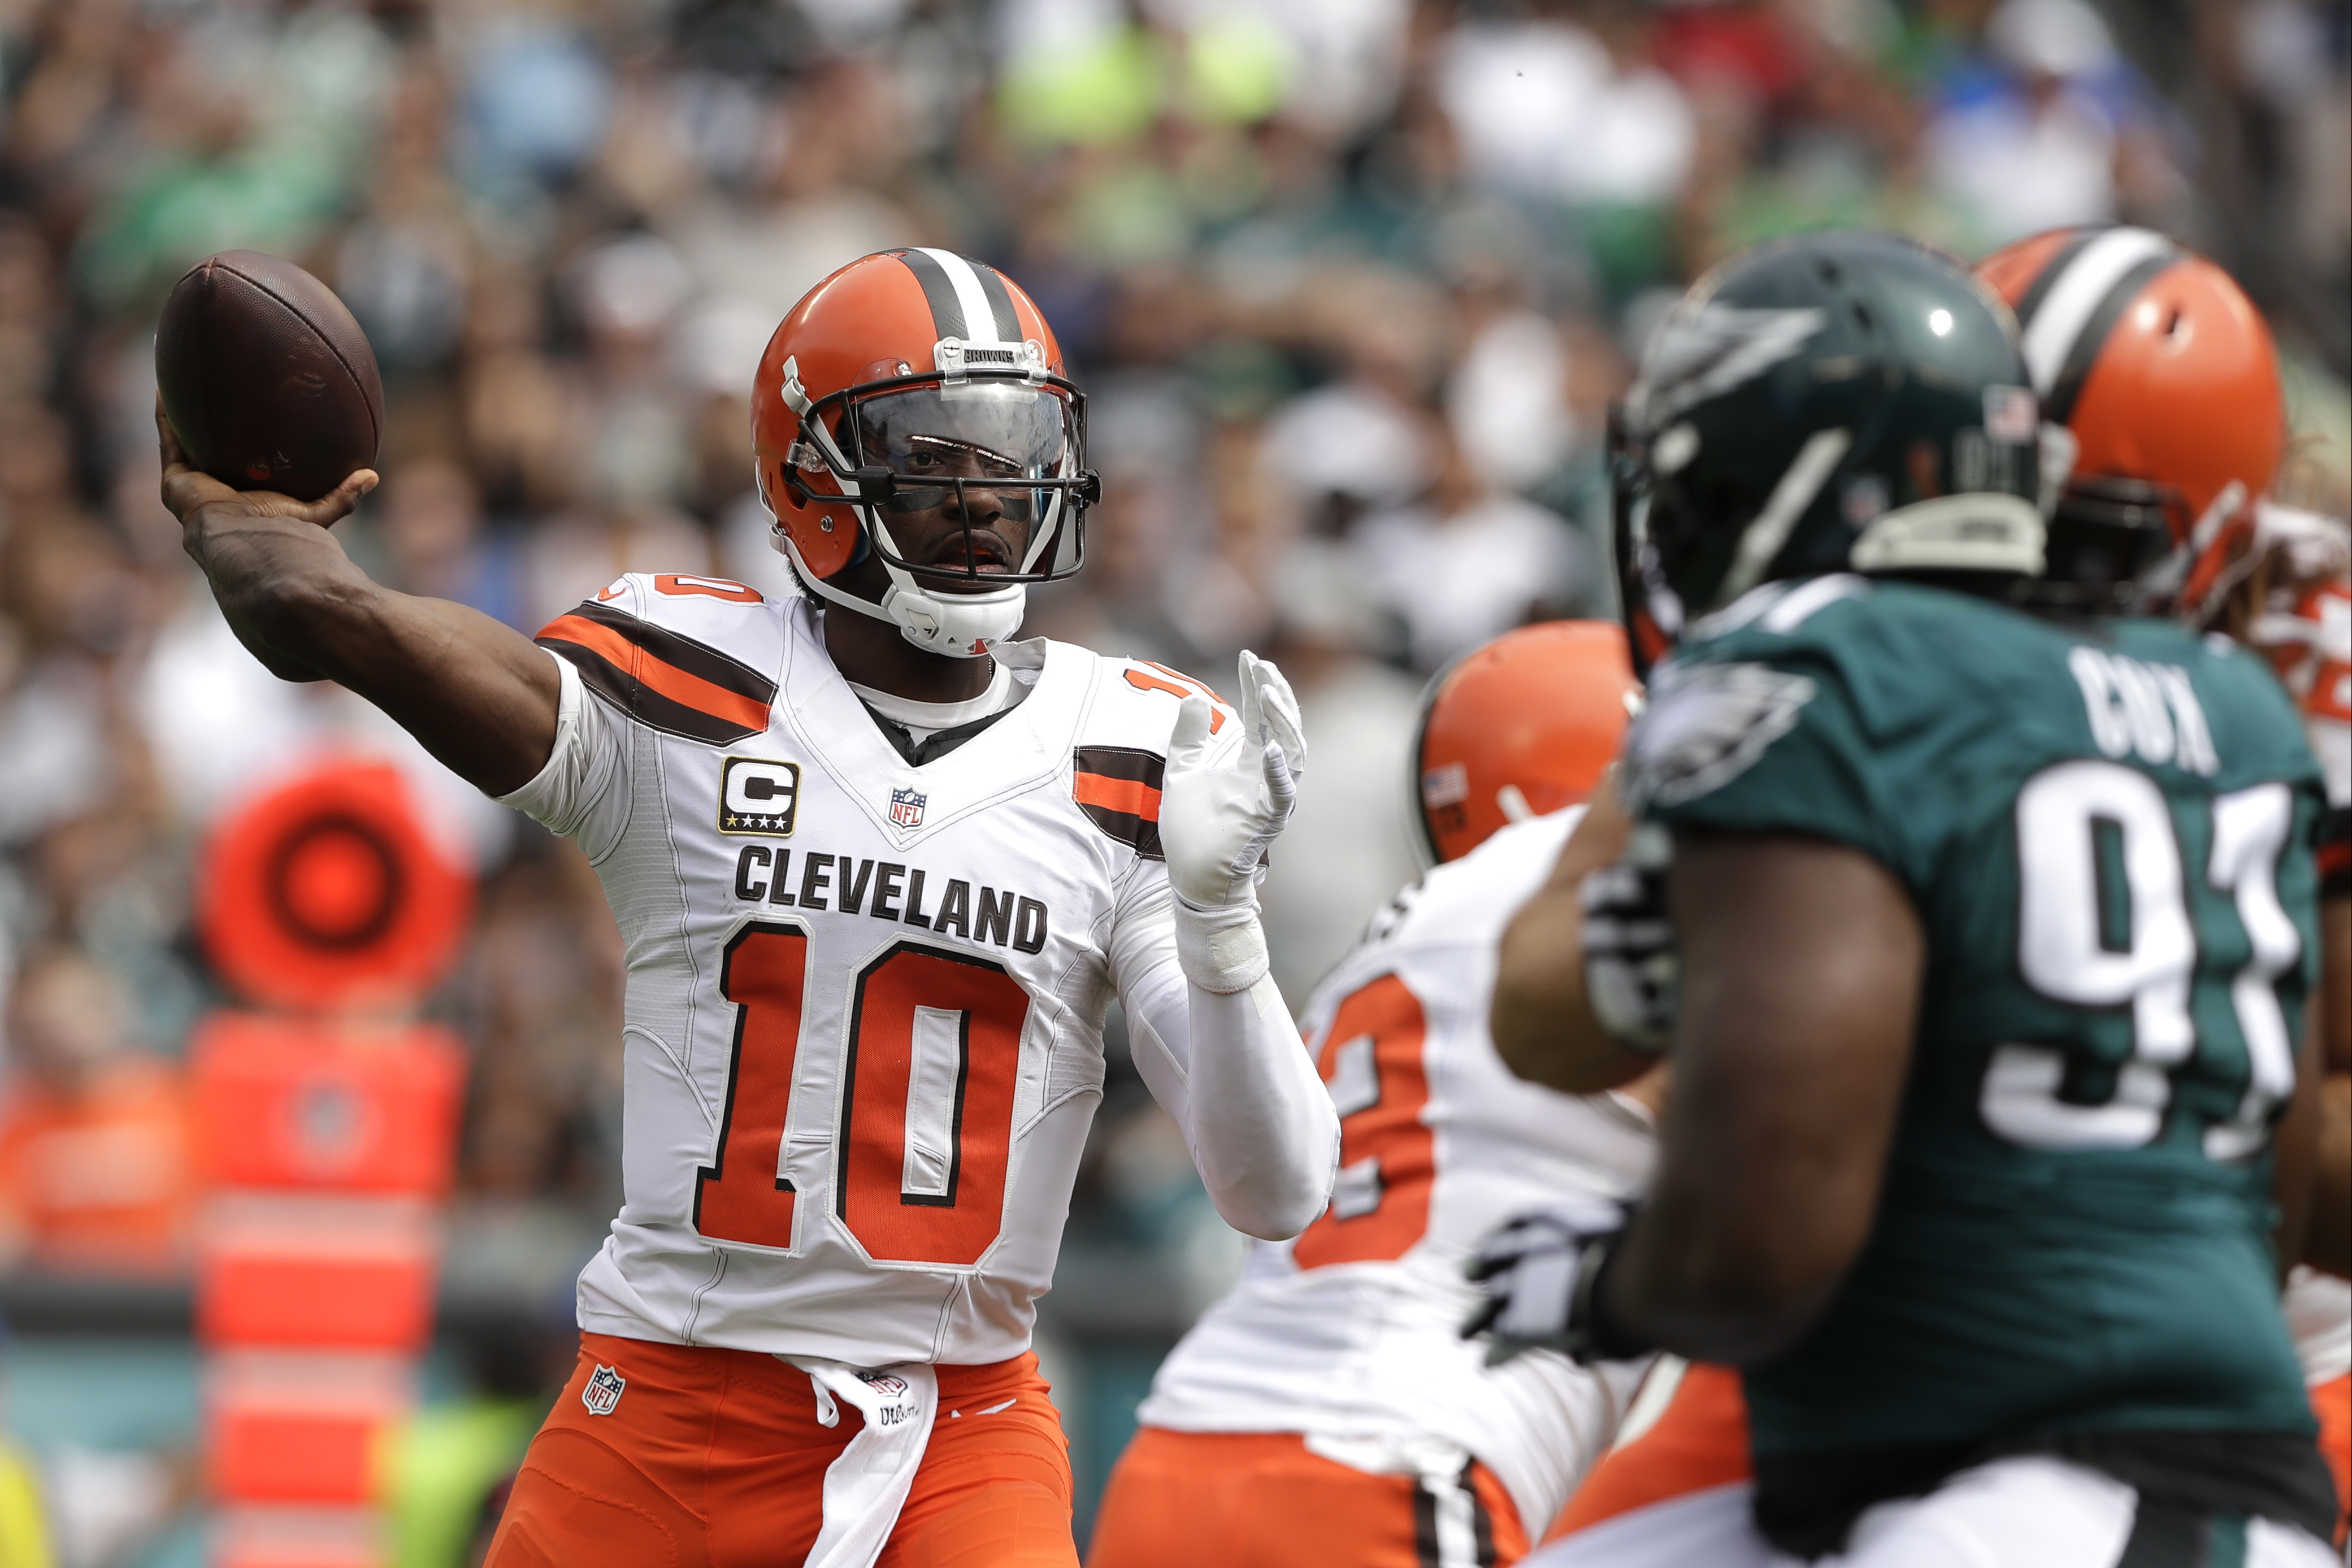 Cleveland Browns' Robert Griffin III passes during the first half of an NFL football game against the Philadelphia Eagles, Sunday, Sept. 11, 2016, in Philadelphia. (AP Photo/Michael Perez)